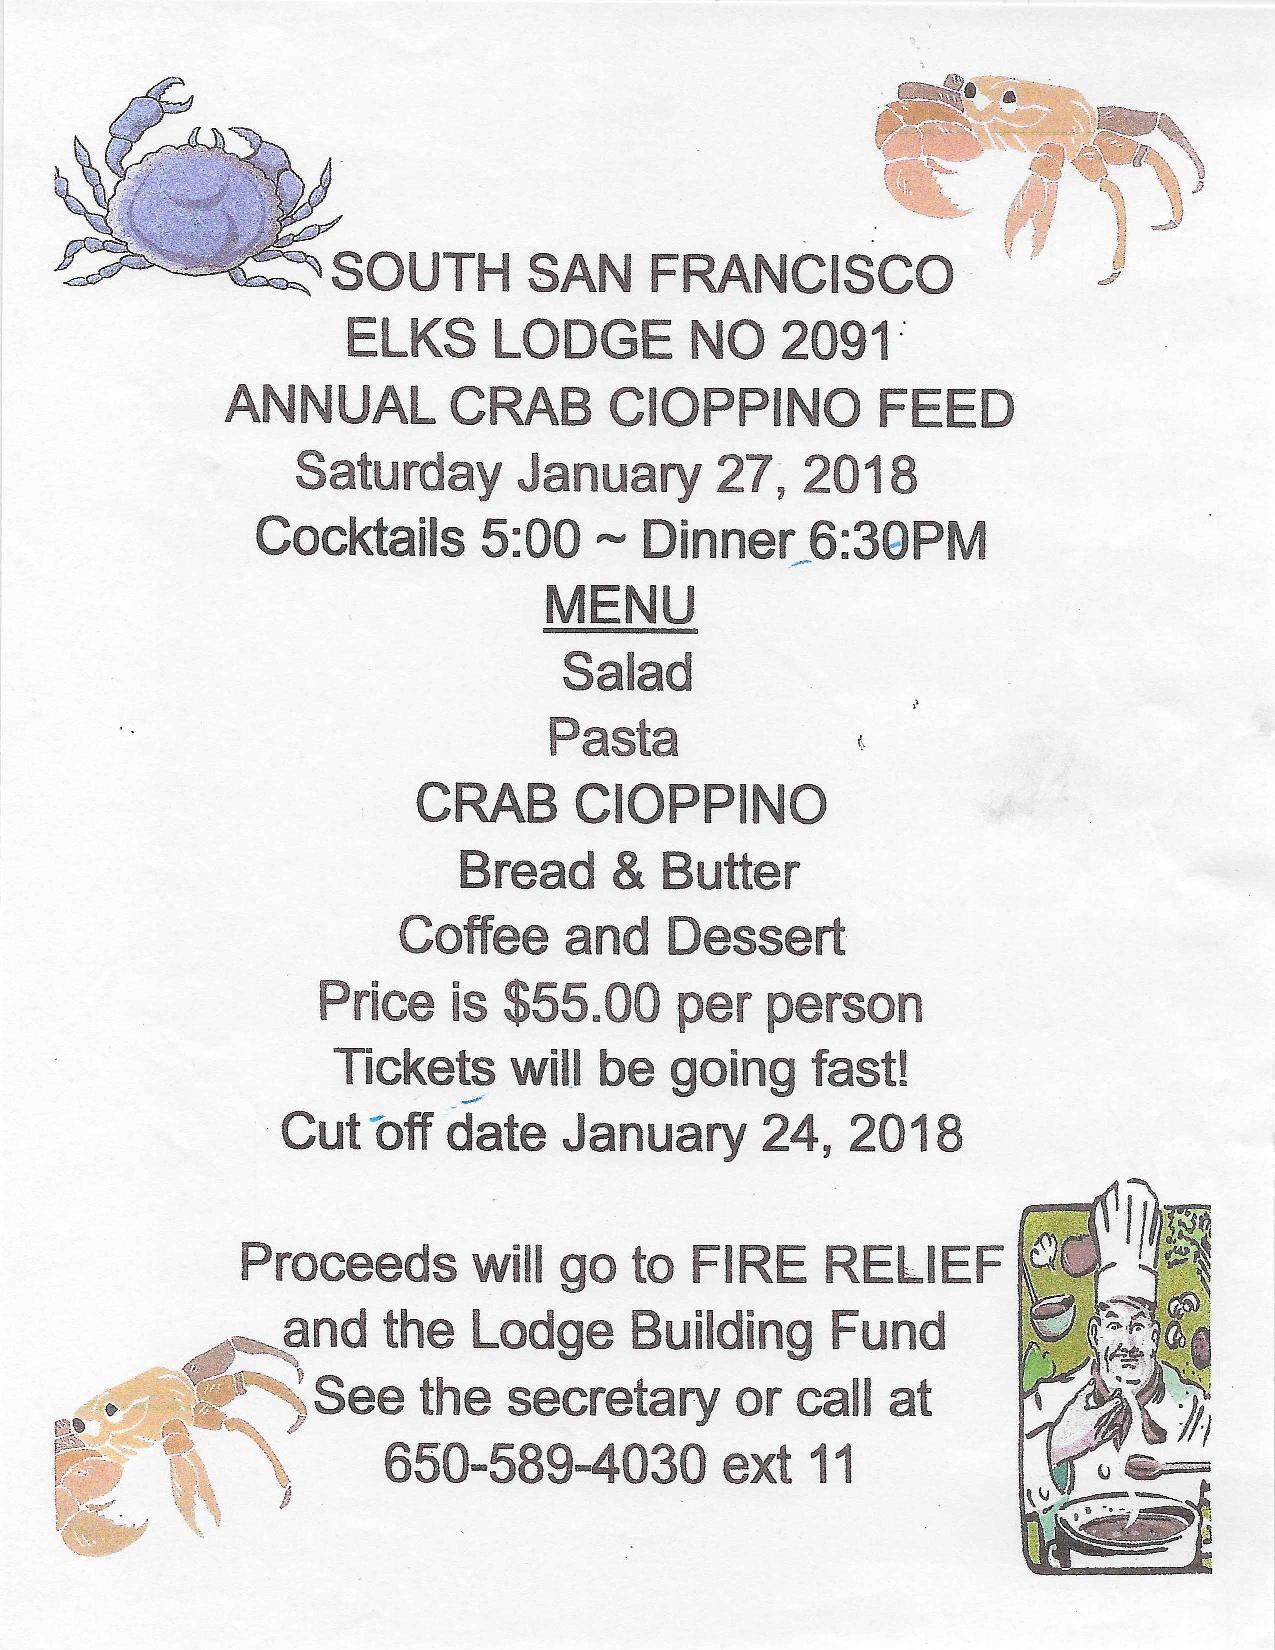 Elks Lodge Crab Cioppino Tickets NOW Available; Fundraiser for Fire Relief